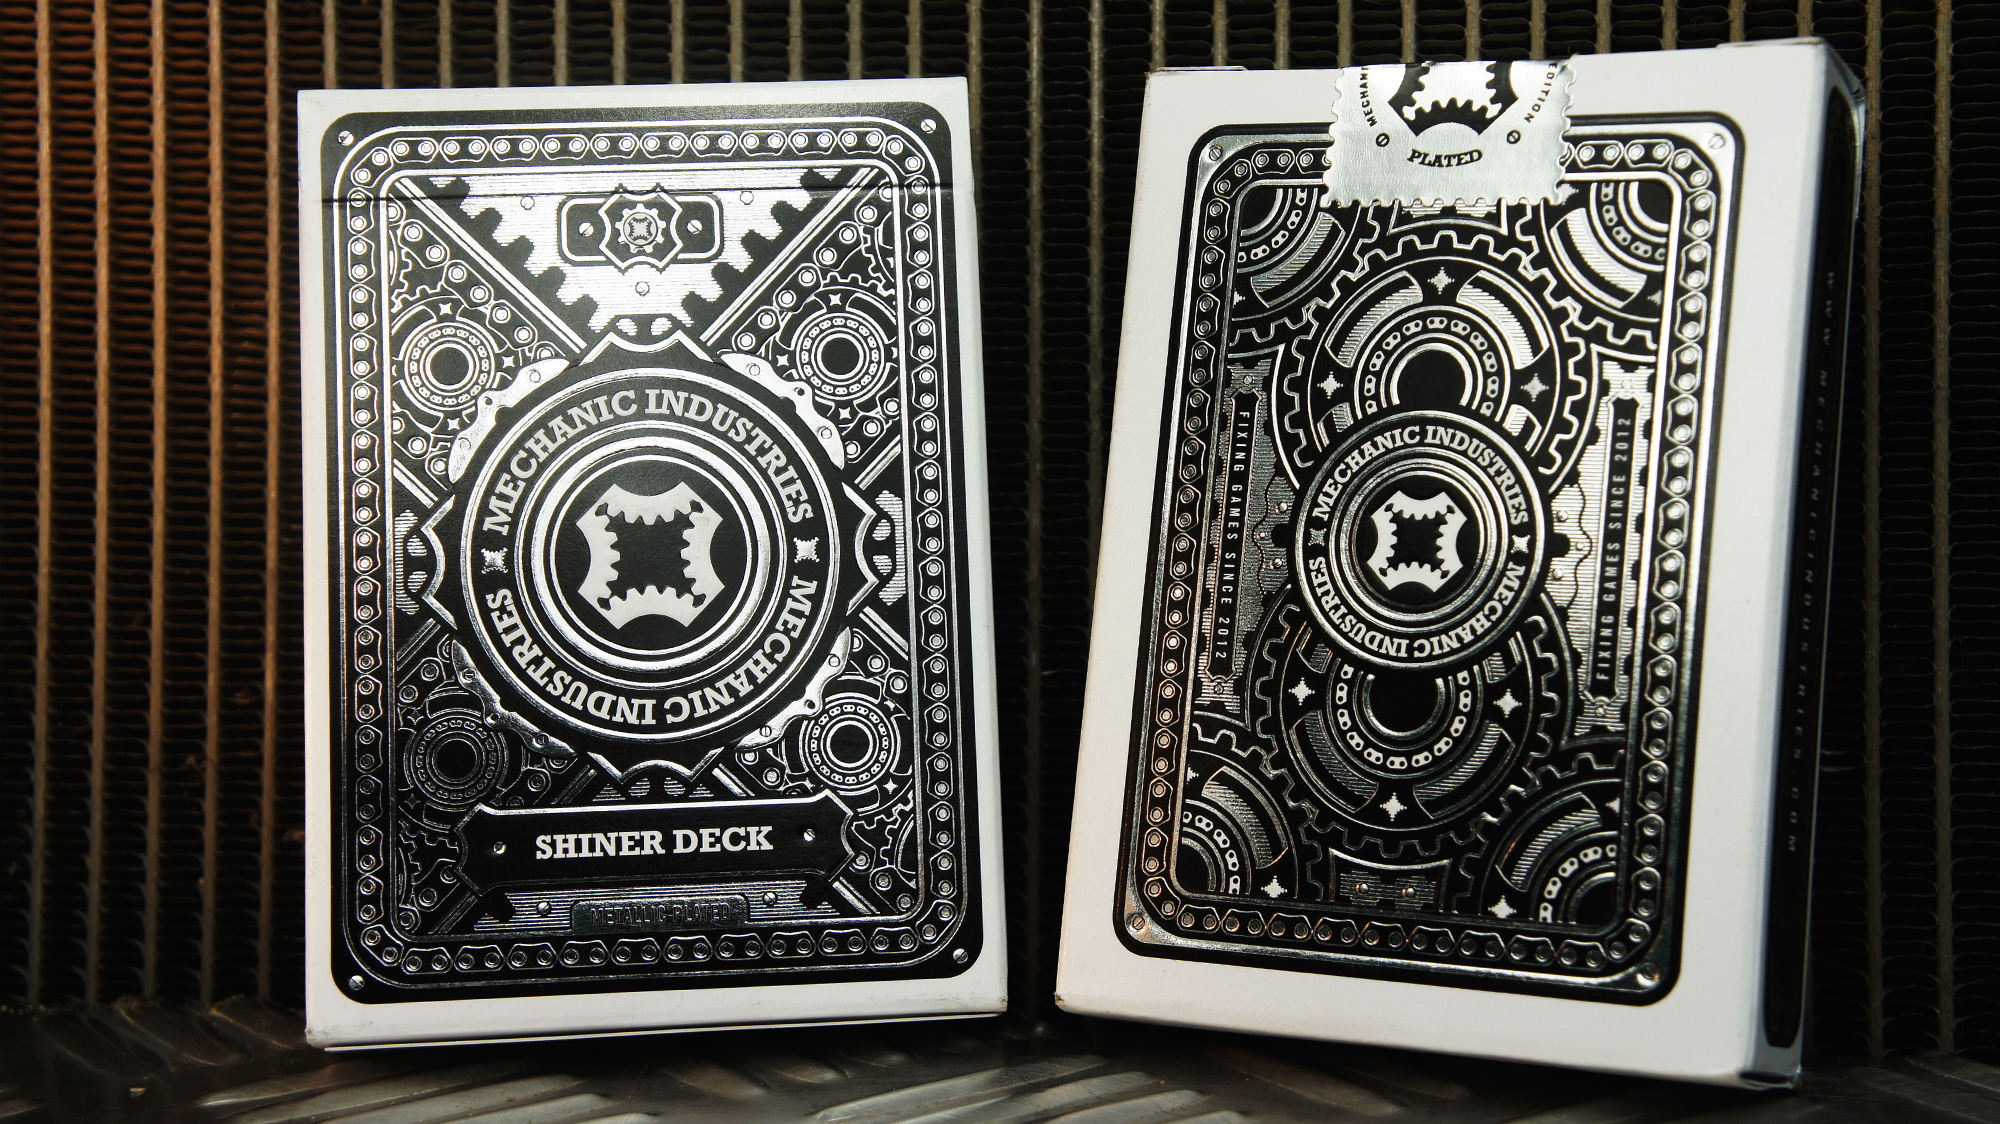 SHINER DECK    METALLIC PLATED    VIEW DETAILS